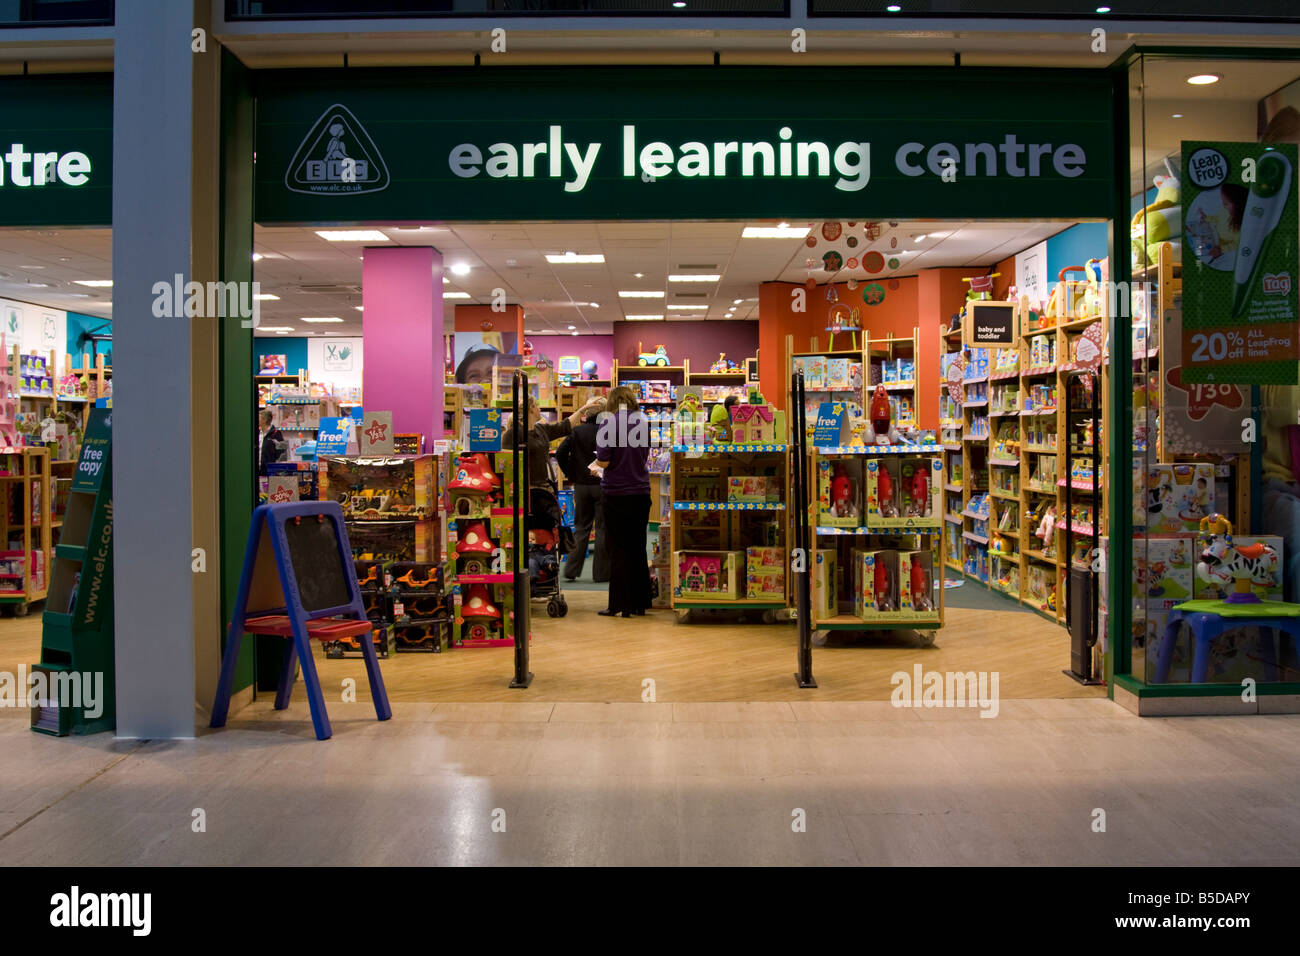 Early Learning Centre Stock Photos & Early Learning Centre Stock ...